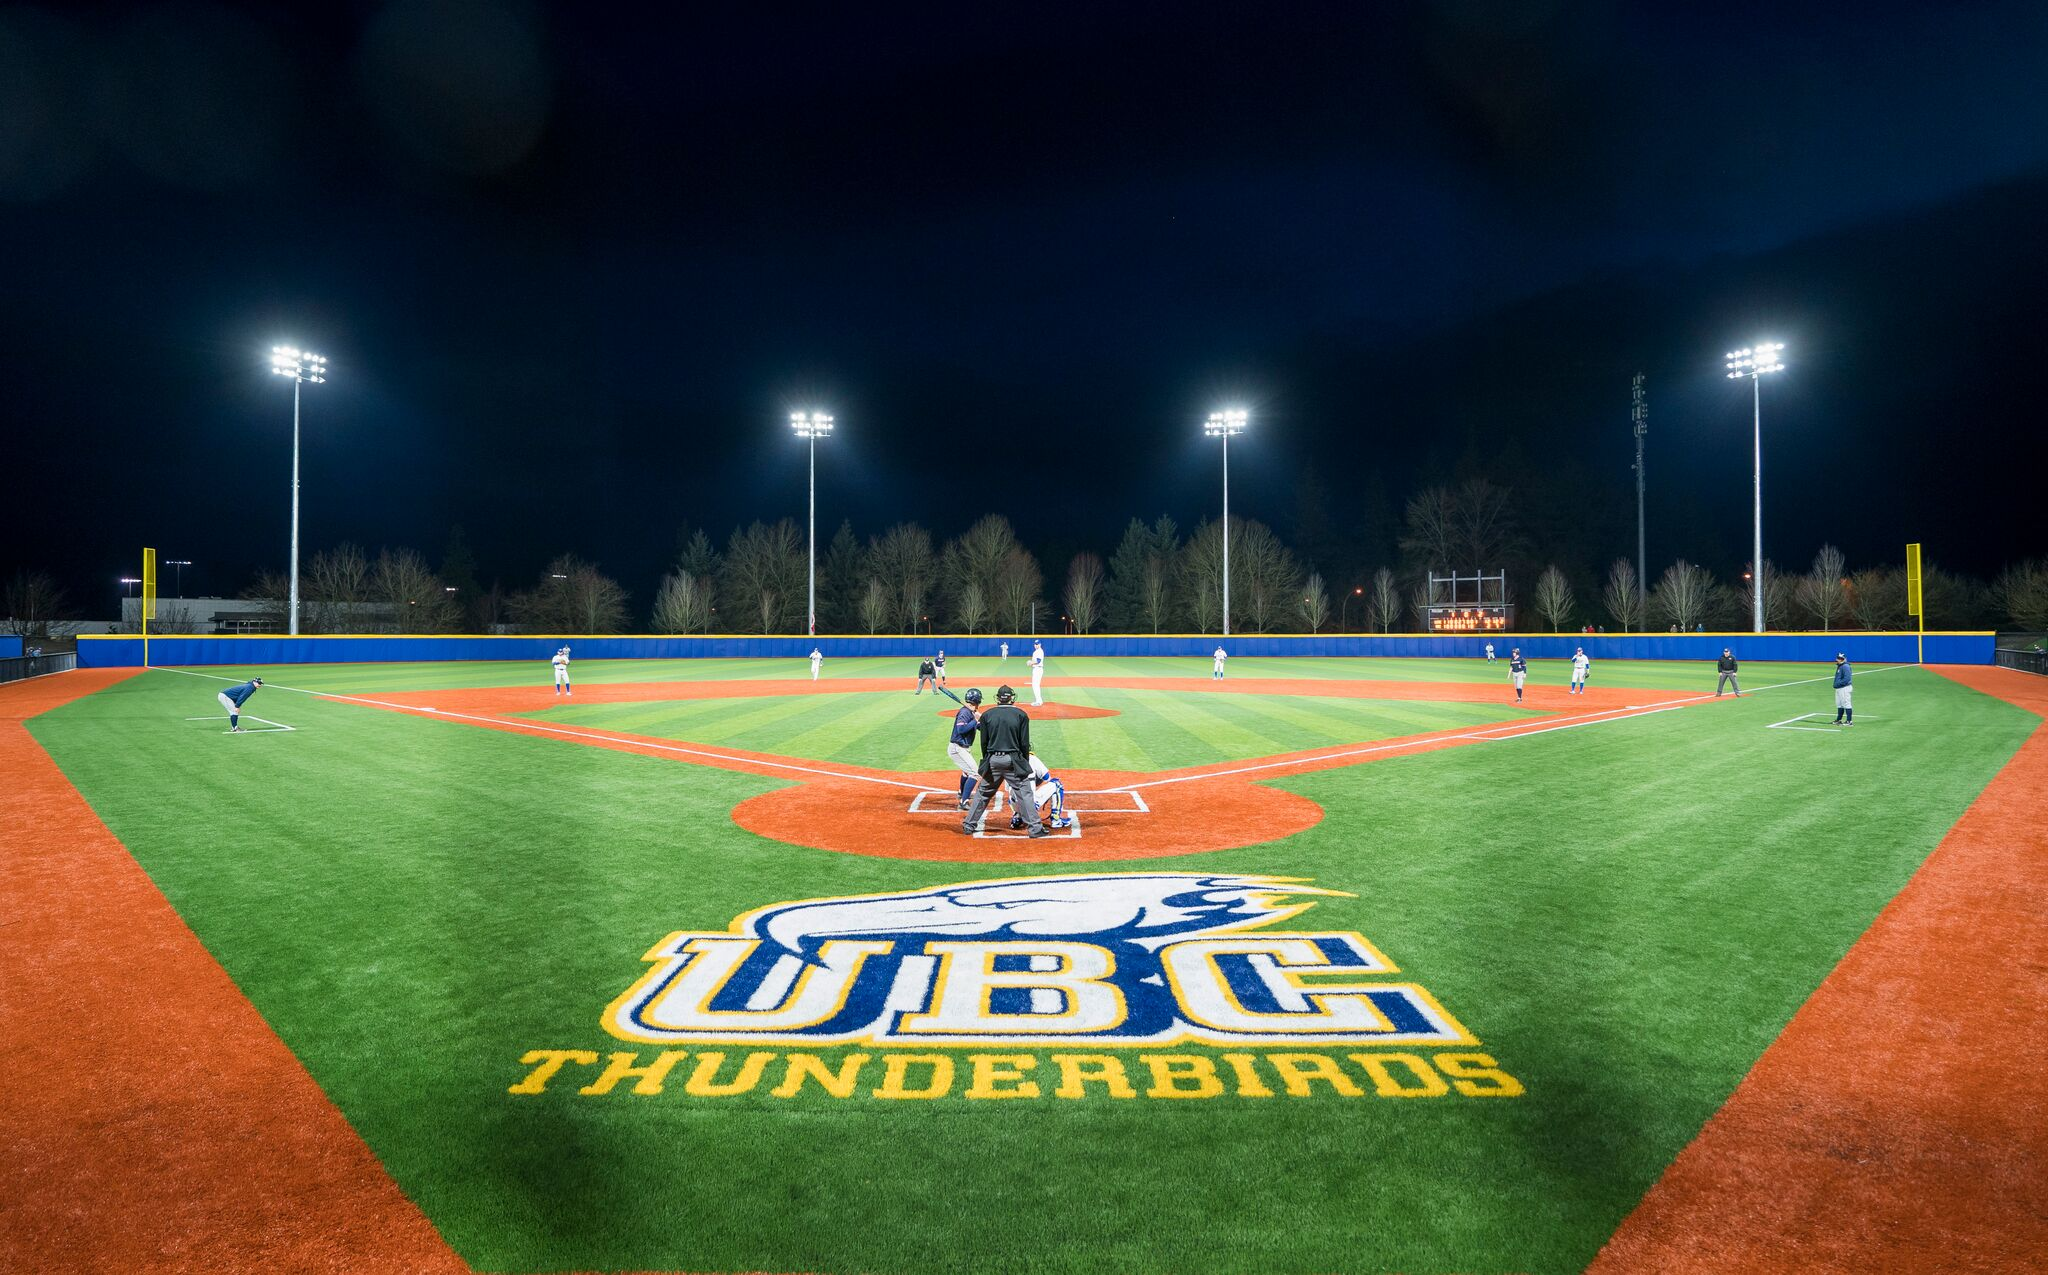 UBC baseball playing on their new diamond.